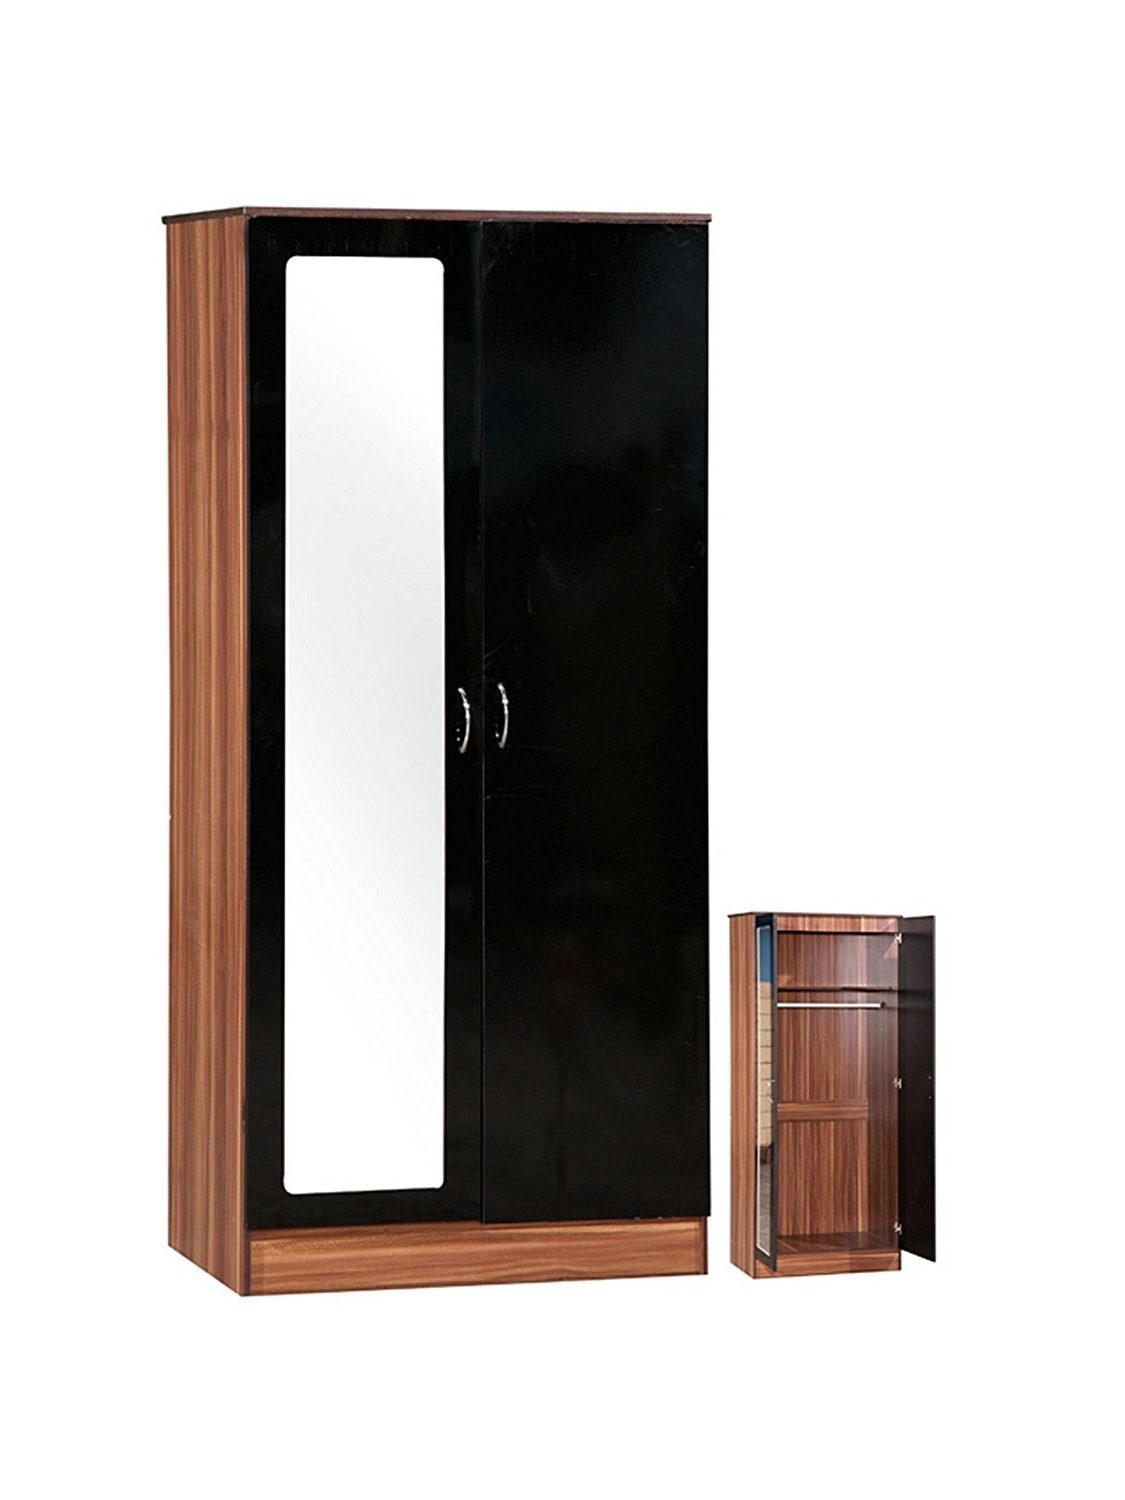 Alpha High Gloss 2 Door Wardrobe With Mirror, Shelf And Hanging Inside Trendy Black Gloss Wardrobes (View 14 of 15)